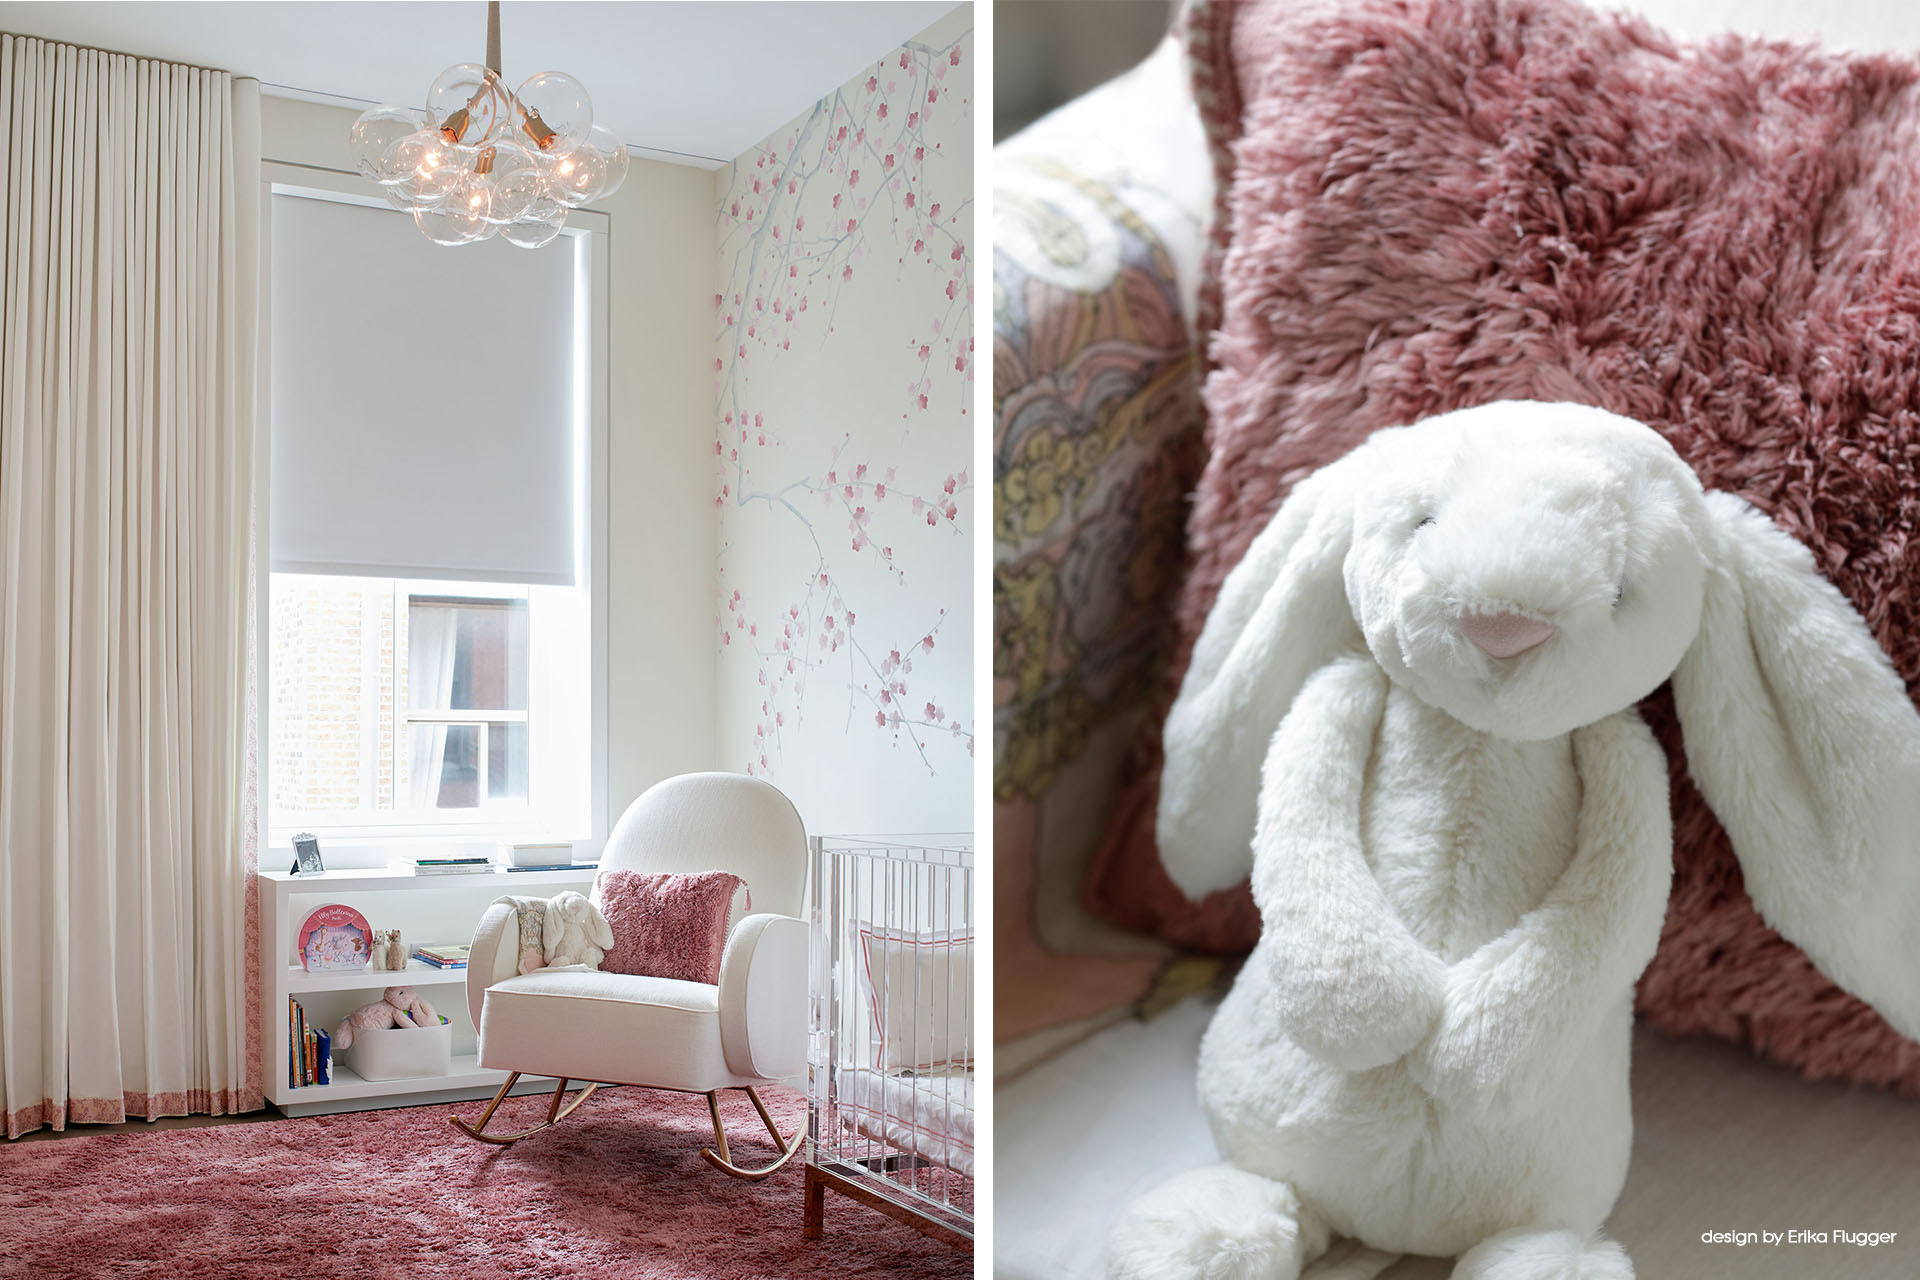 nyc interior design _tribeca penthouse_nursery_by Erika Flugger